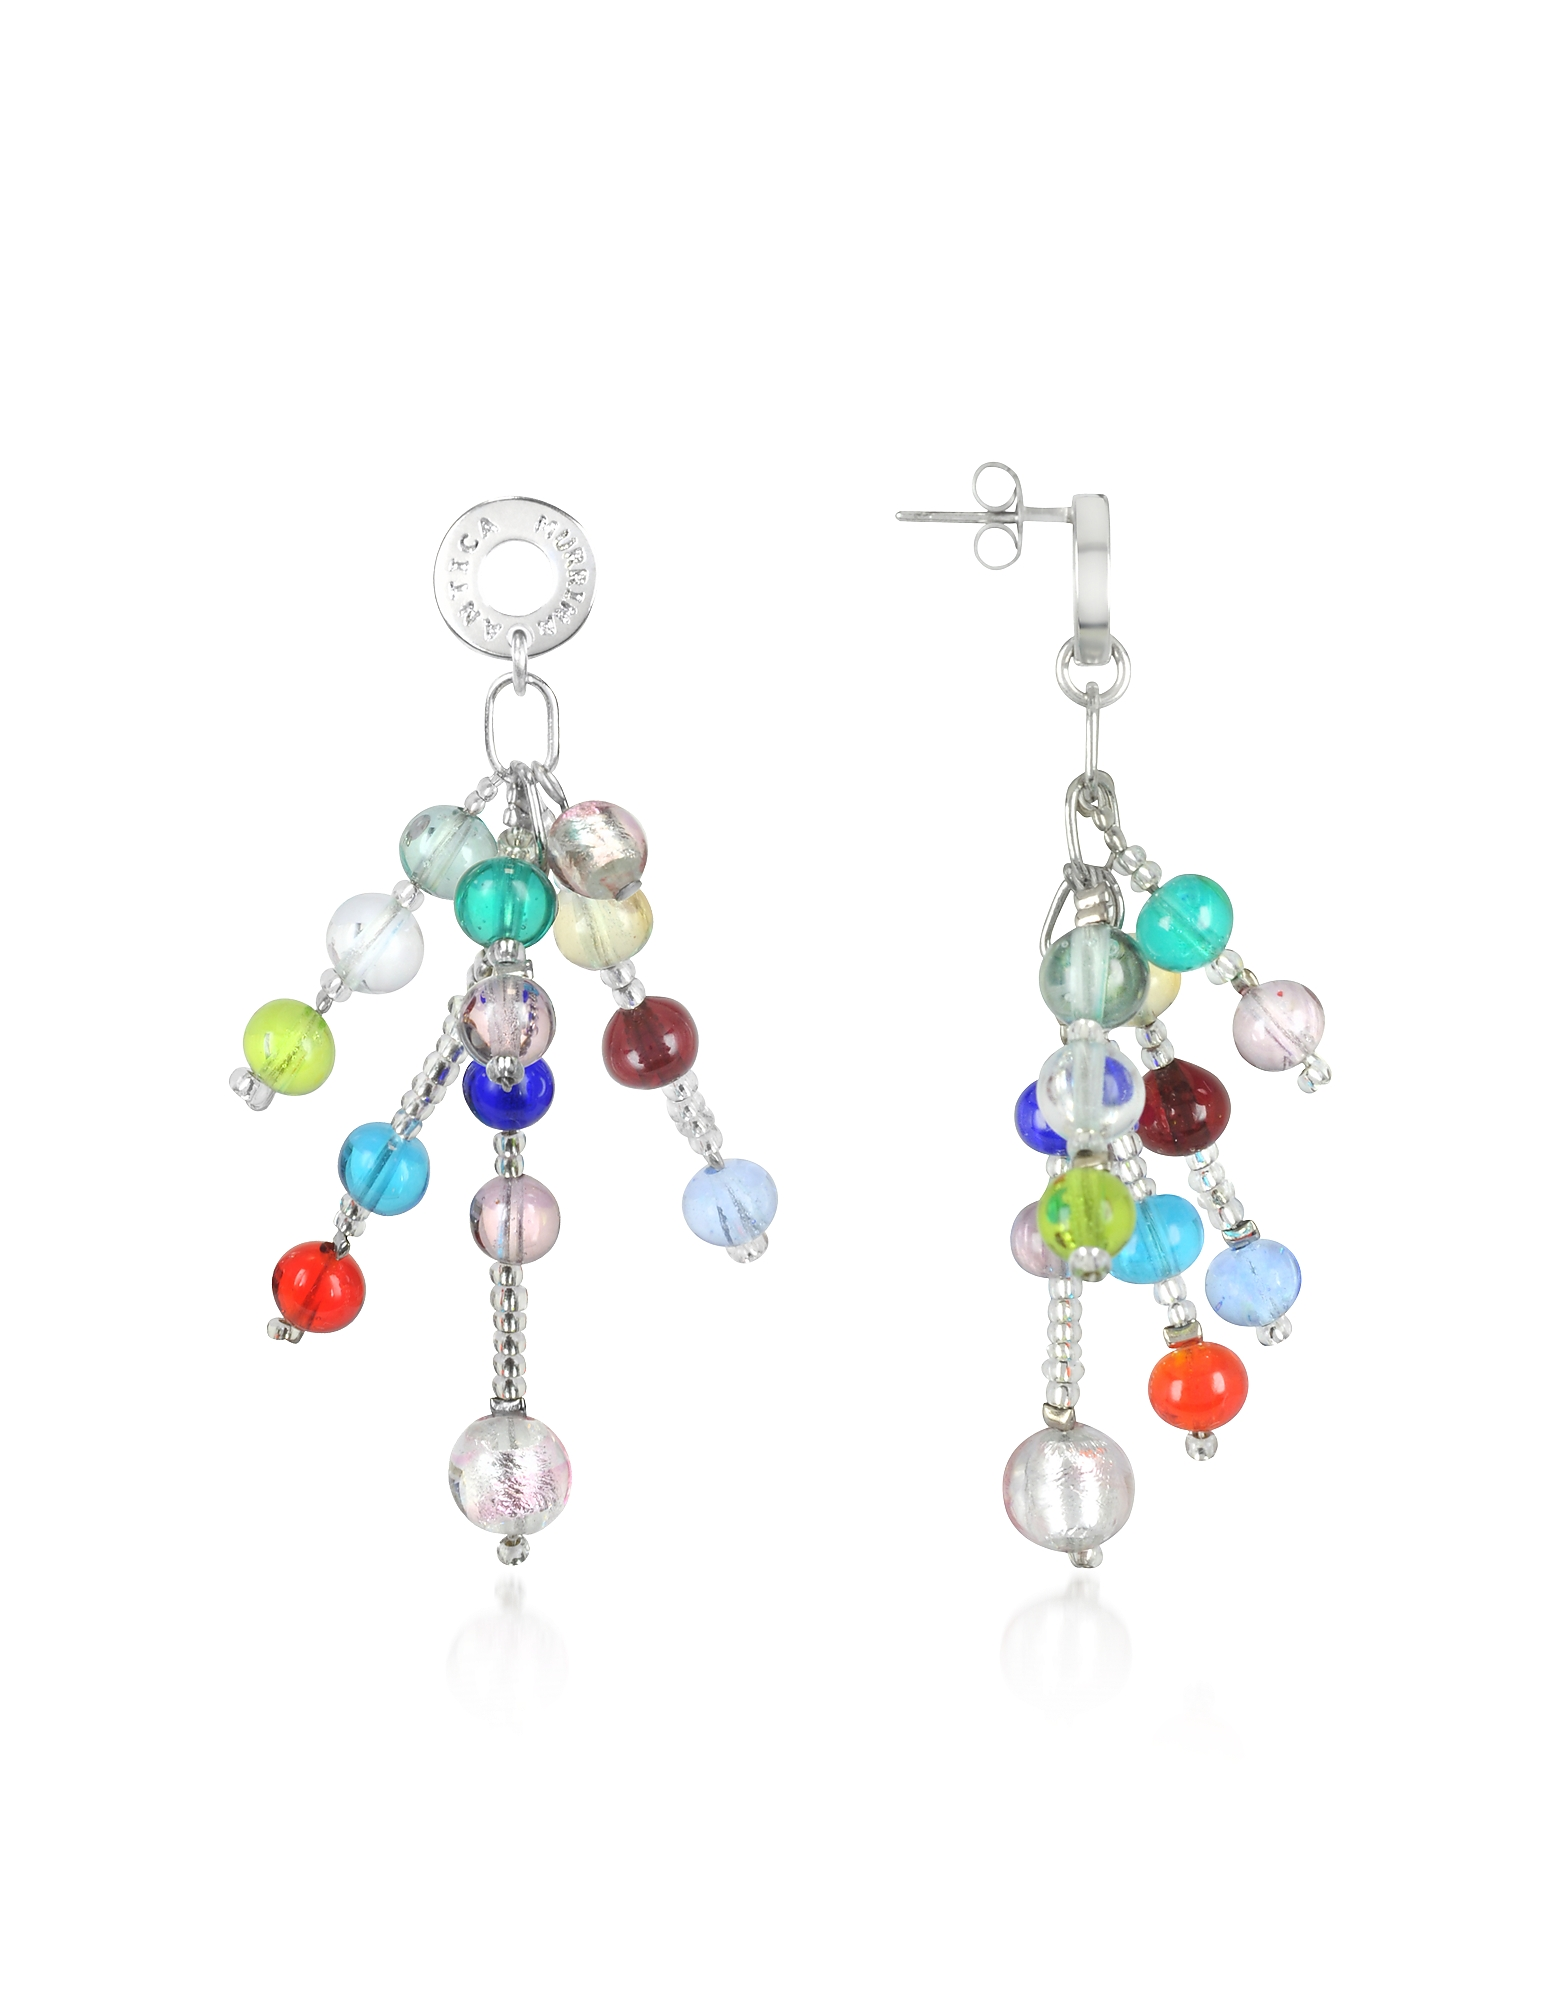 Antica Murrina Earrings, Prestige - Murano Glass Pearl Drop Earrings